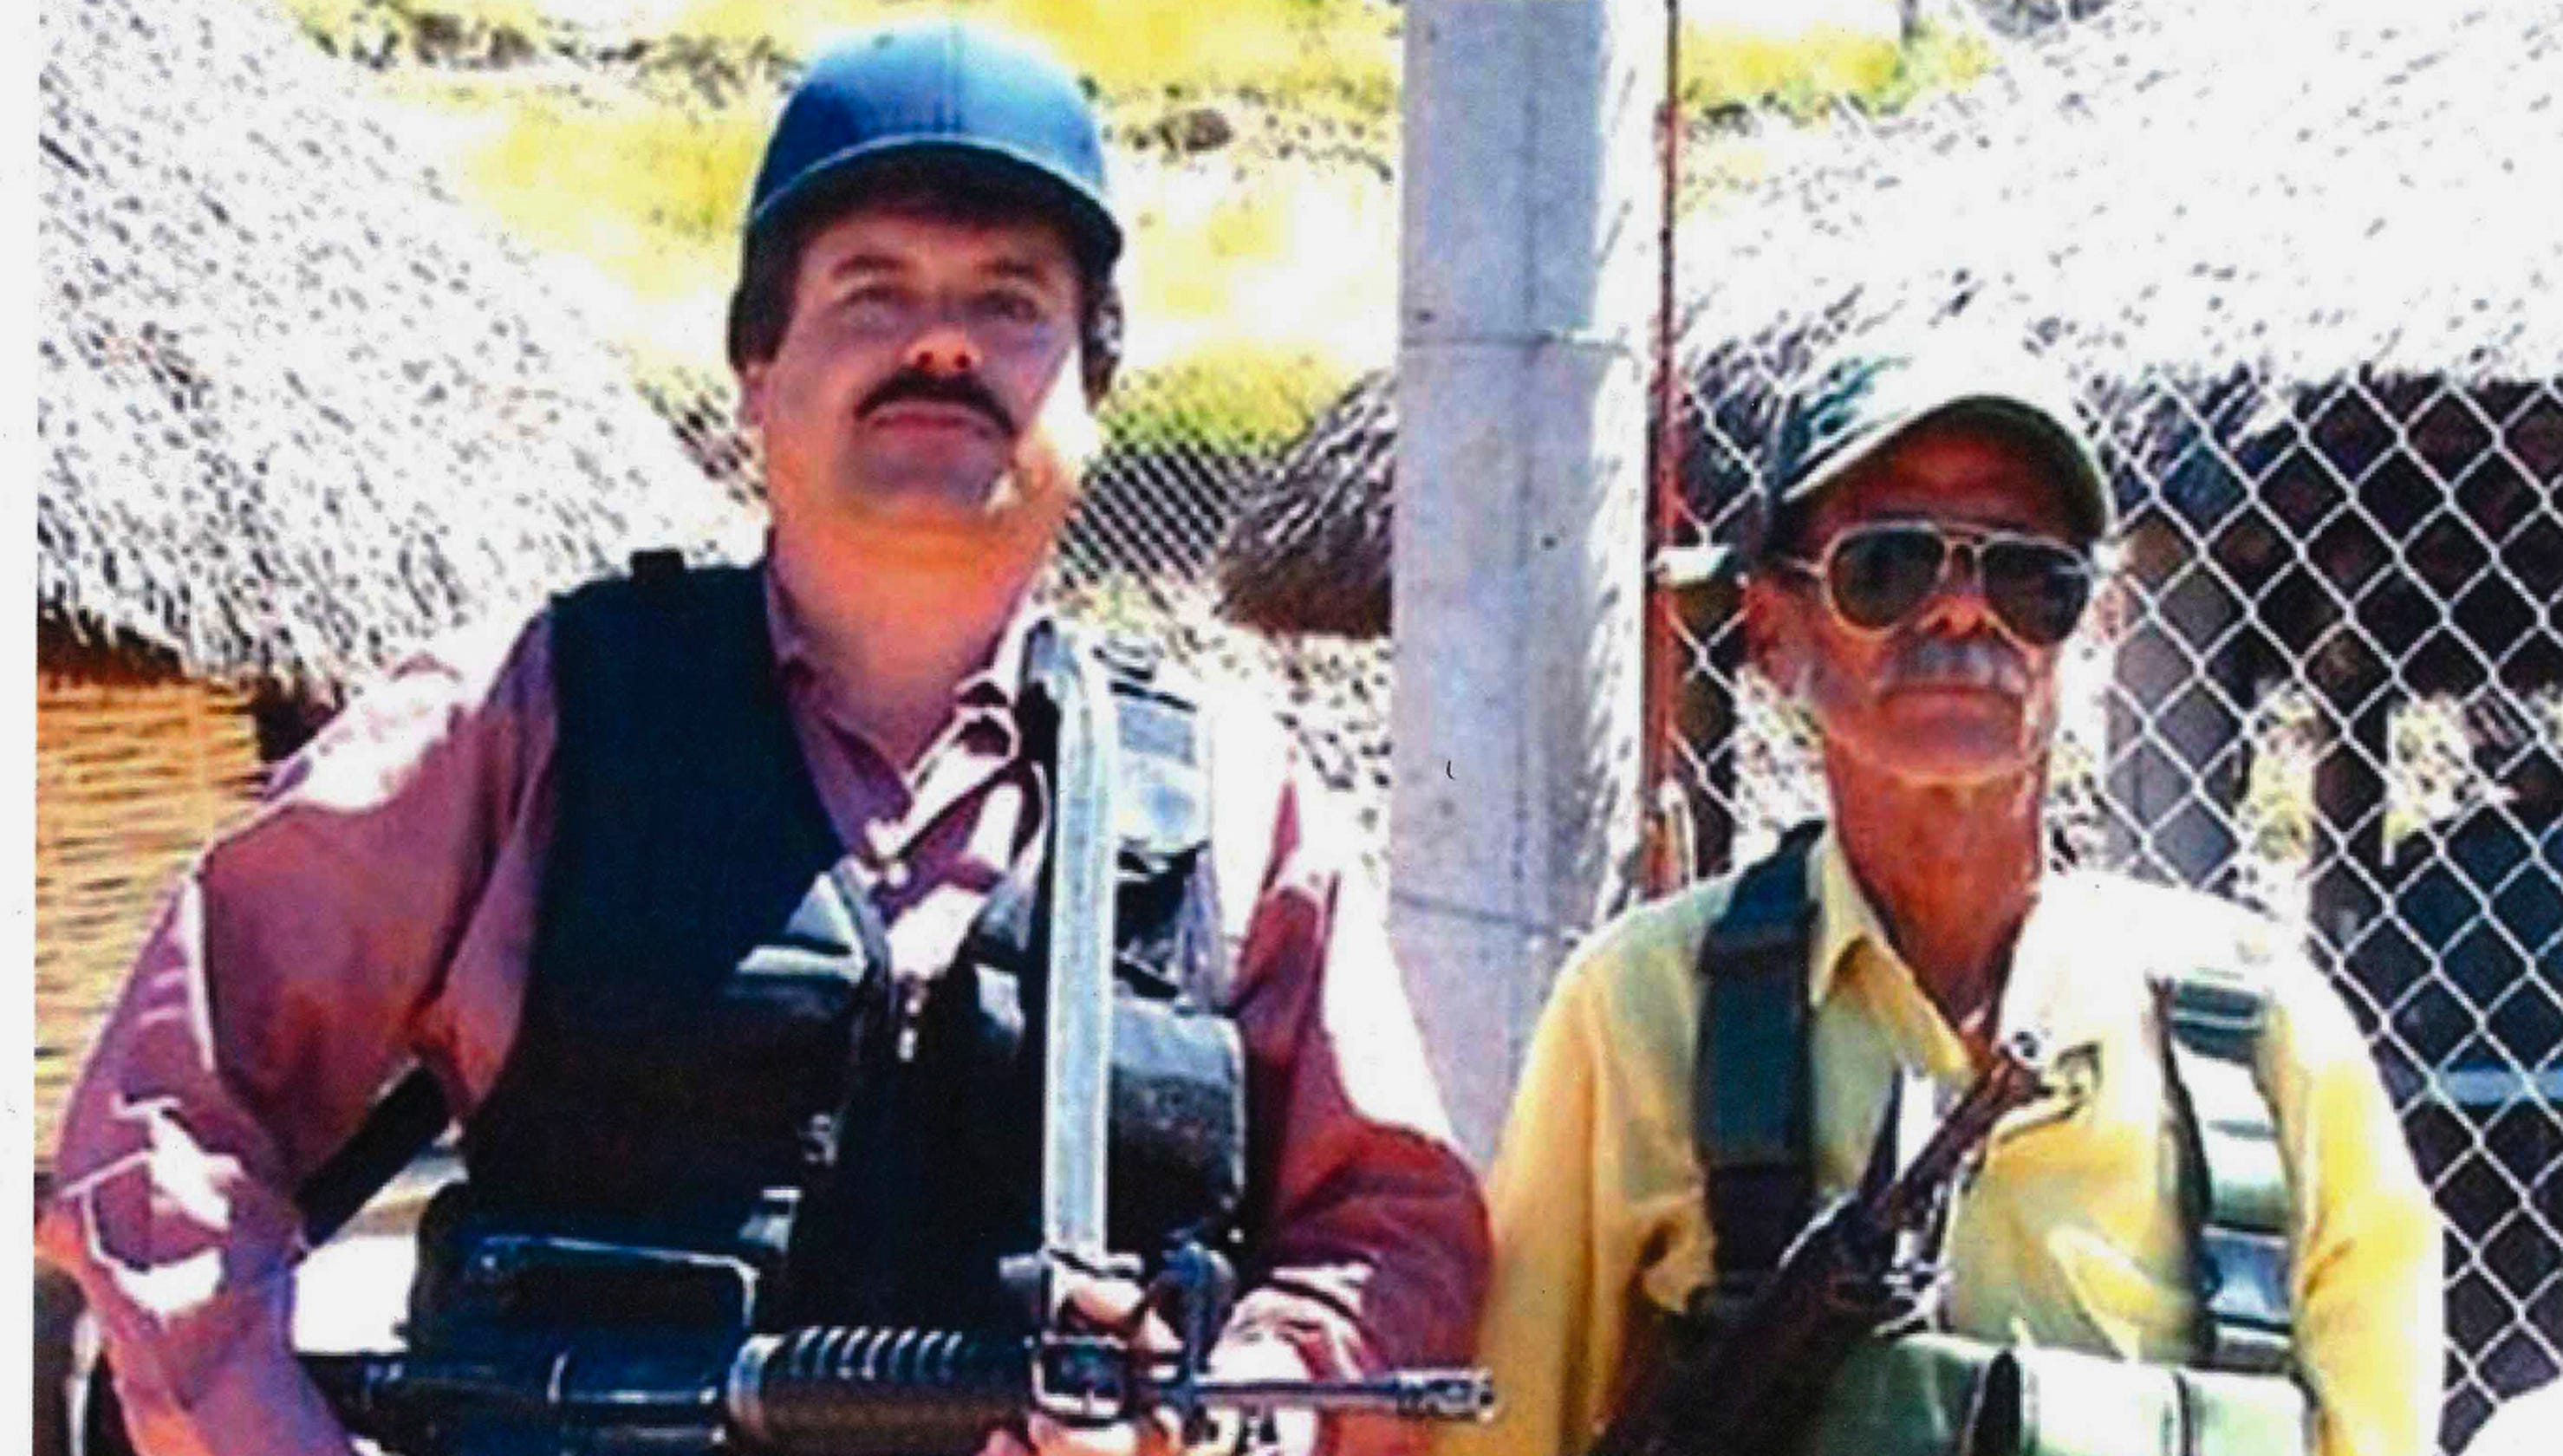 El Chapo witness says alleged drug lord ordered one enemy buried alive